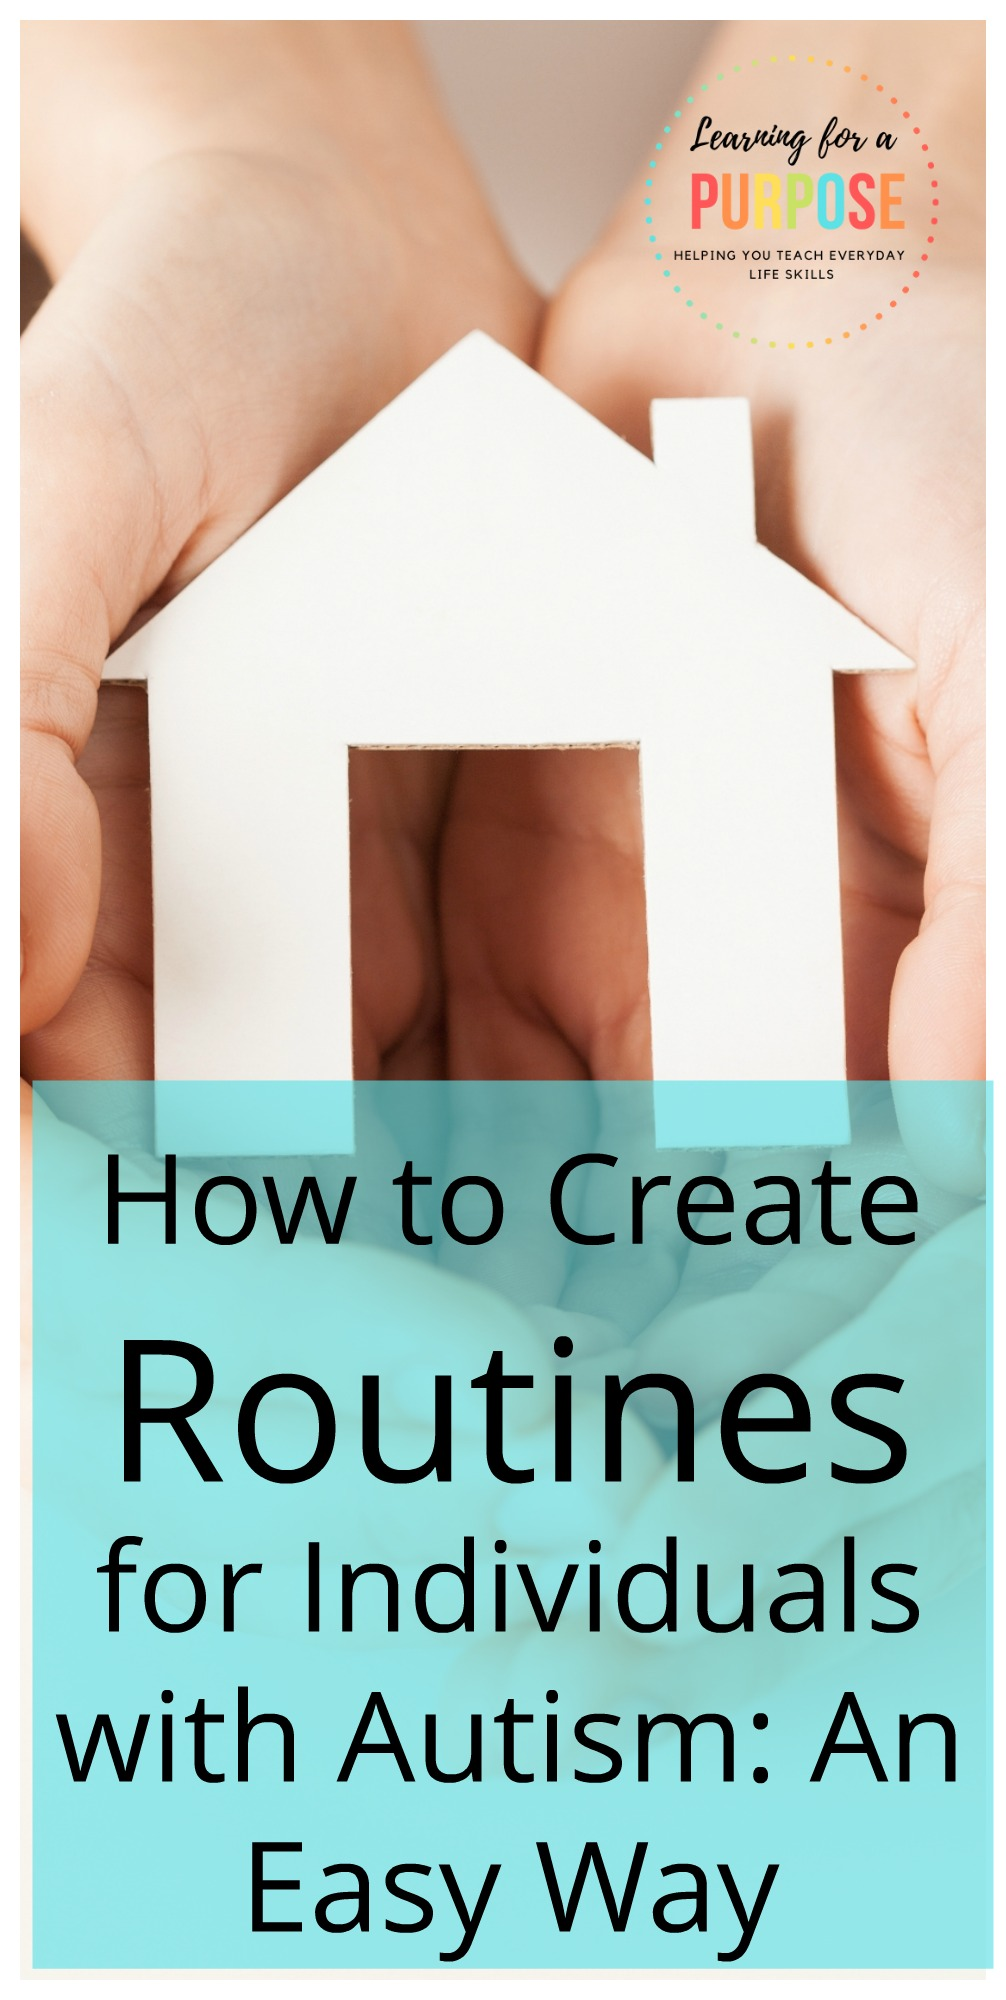 How to Create Routines for Individuals with Autism: An Easy Way